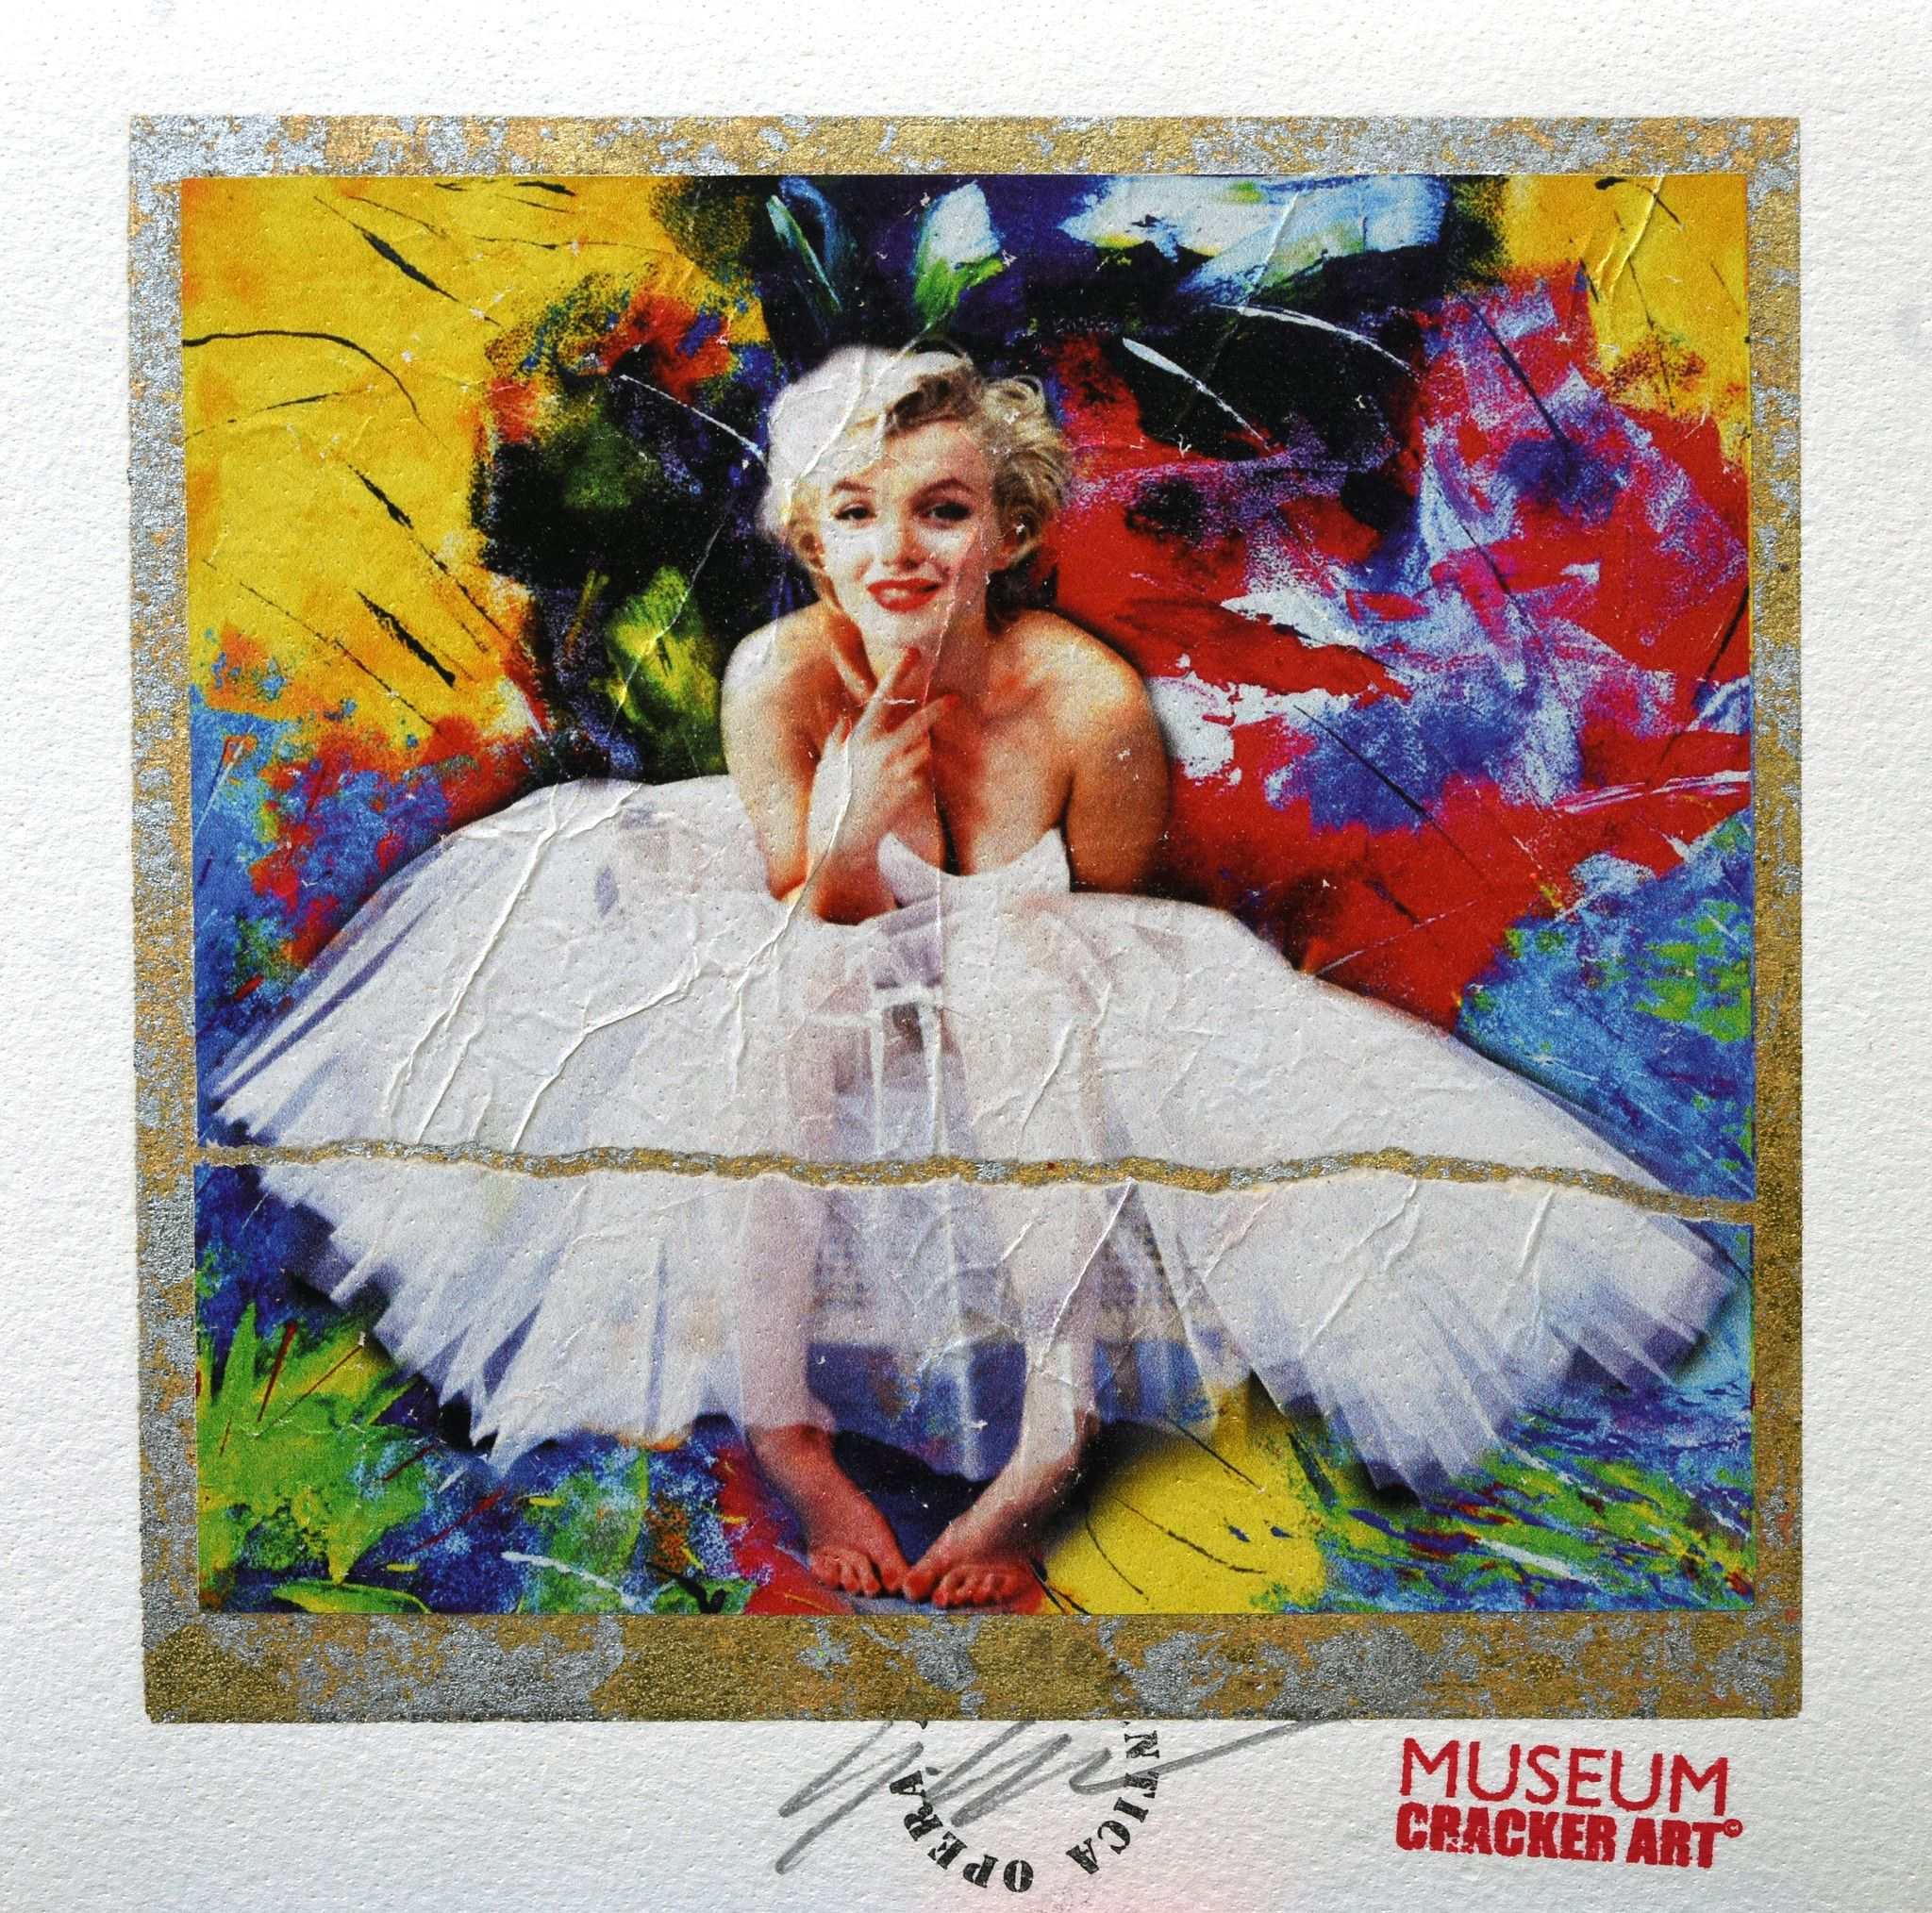 GRAFICA GIULIANO GRITTINI ' MARILYN 2 '  dimensioni L 23 x H 23 cm.